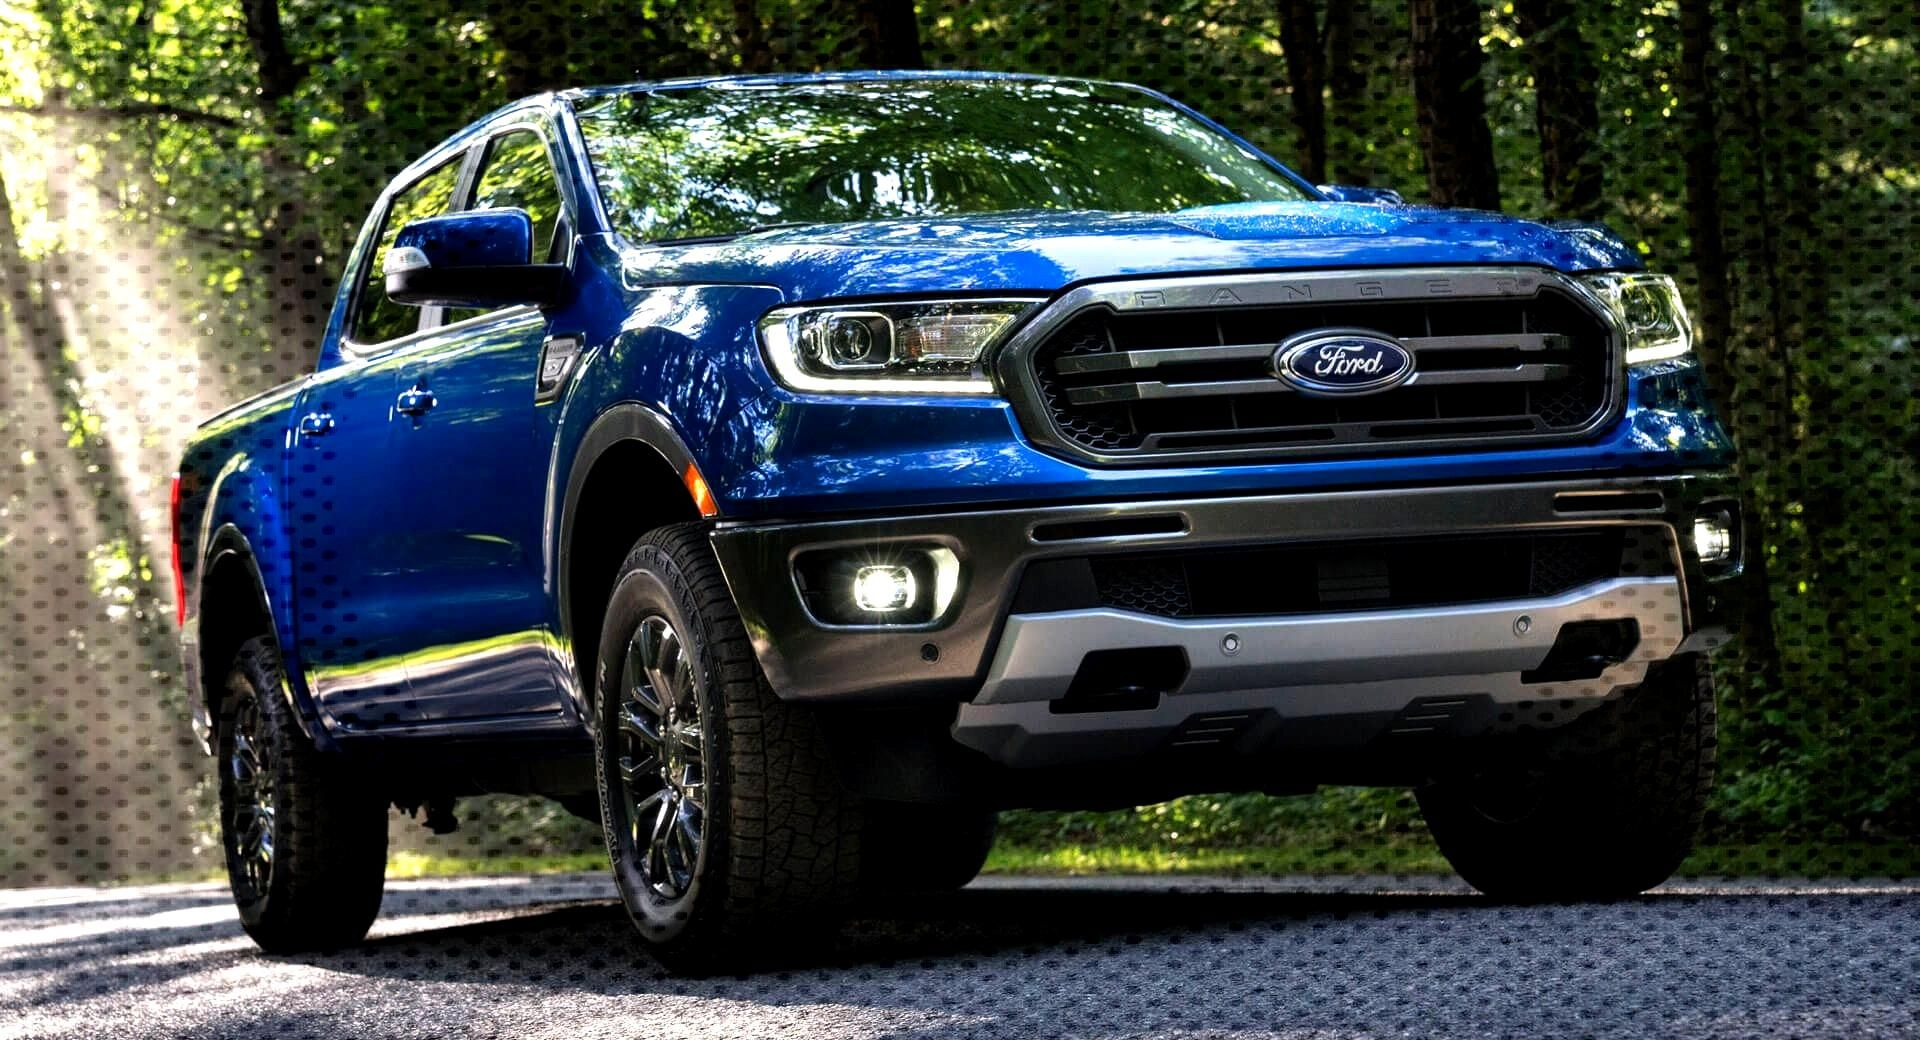 Ford Ranger Gets Its Fifth Recall This Year, This Time For Problematic Taillamps